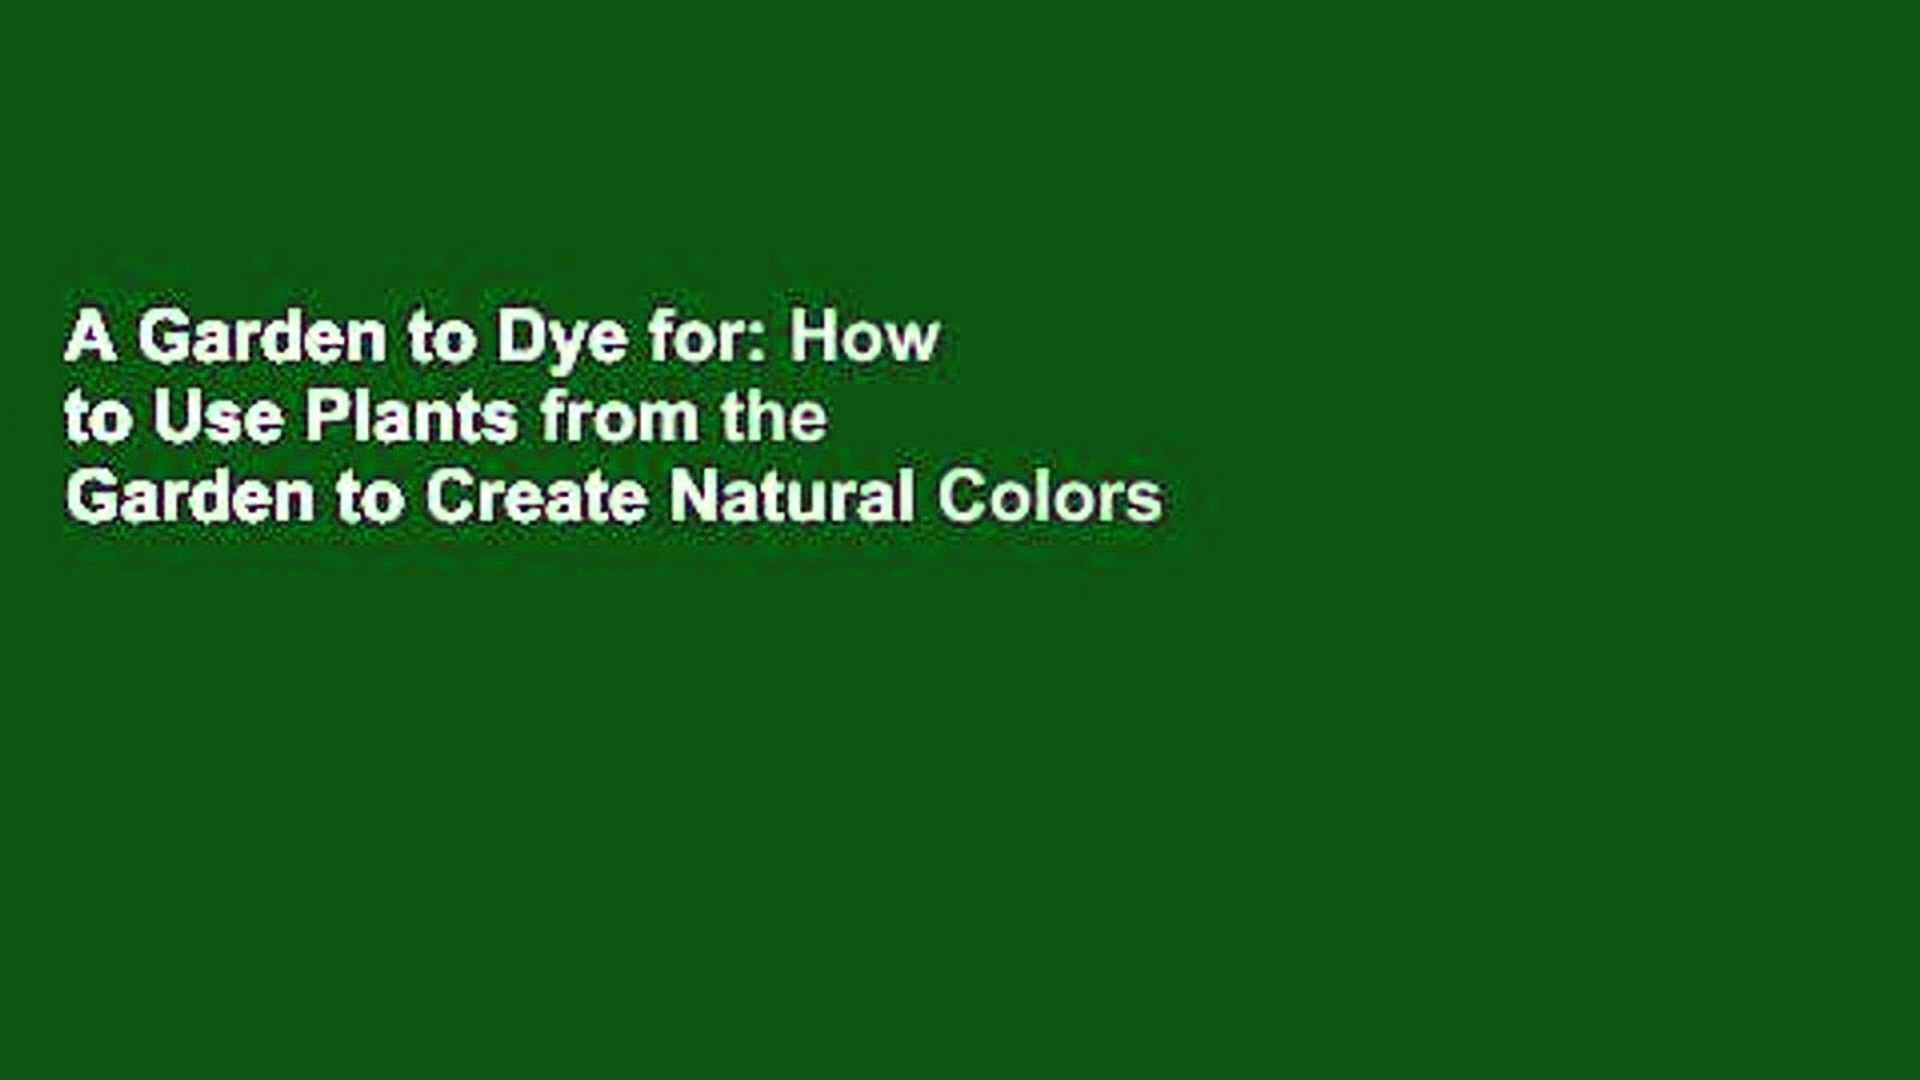 A Garden to Dye for: How to Use Plants from the Garden to Create Natural Colors for Fabrics and